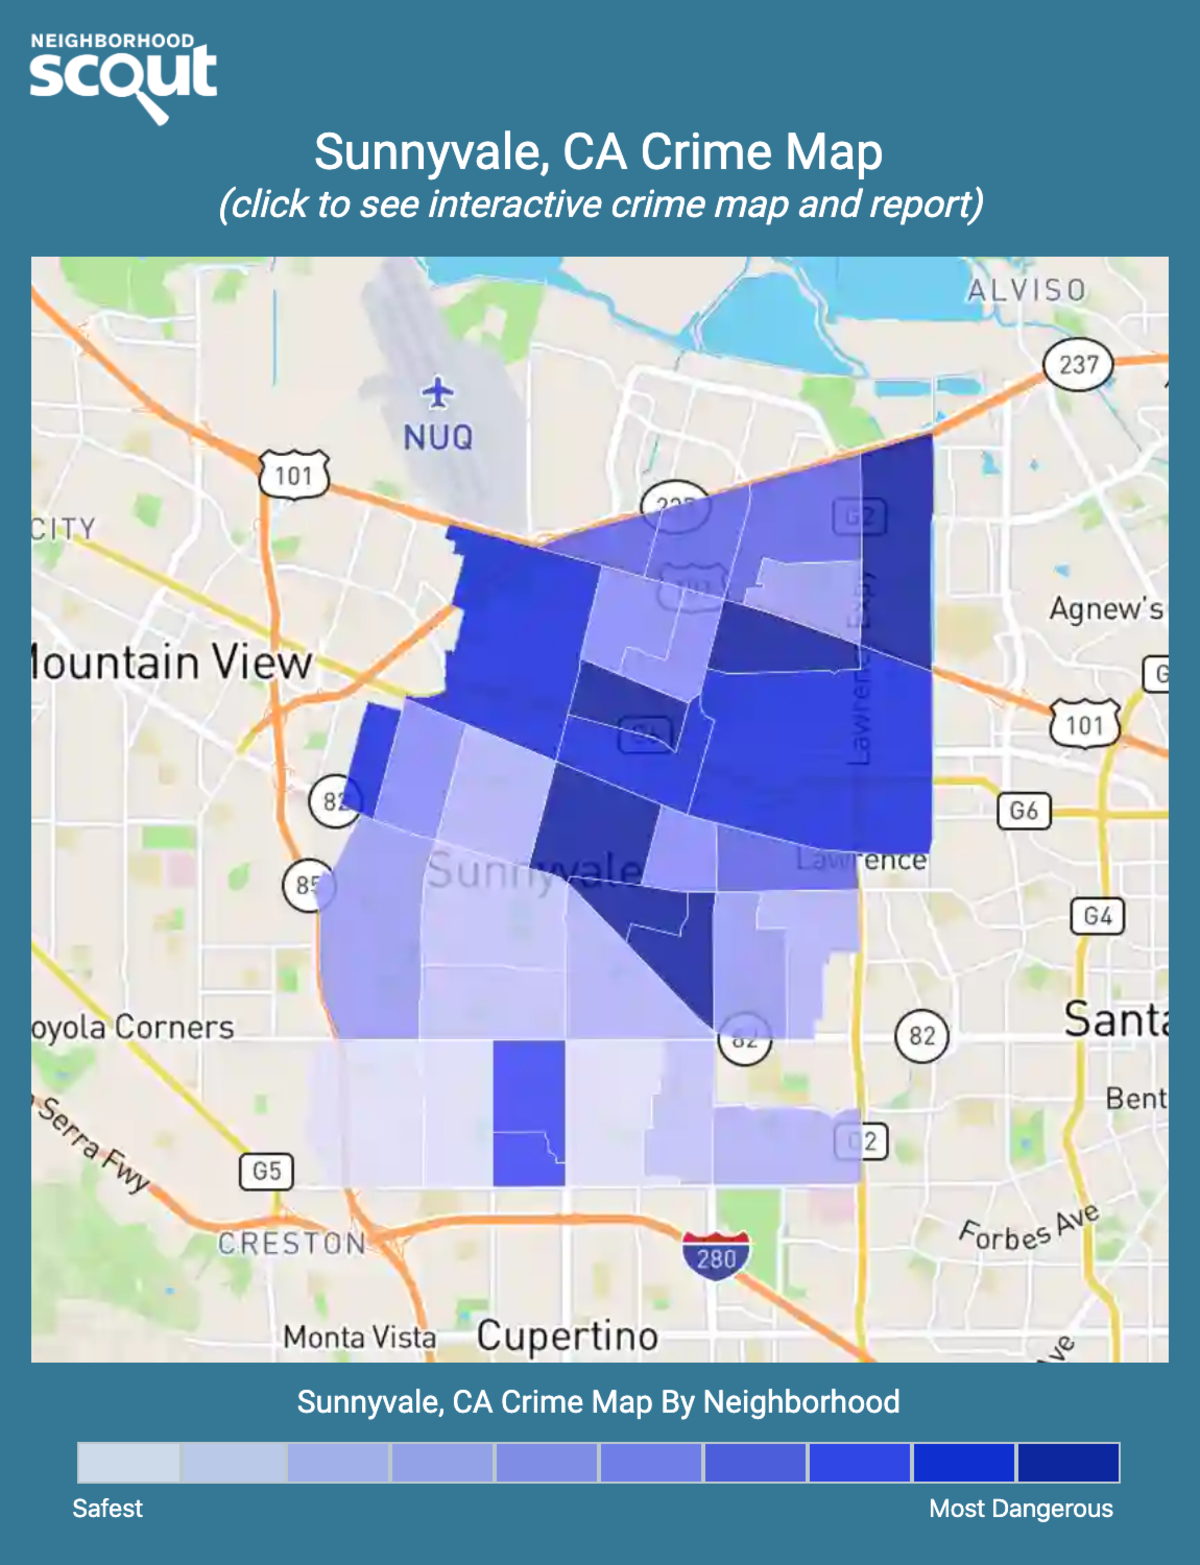 Sunnyvale, CA Crime Rates and Statistics - NeighborhoodScout